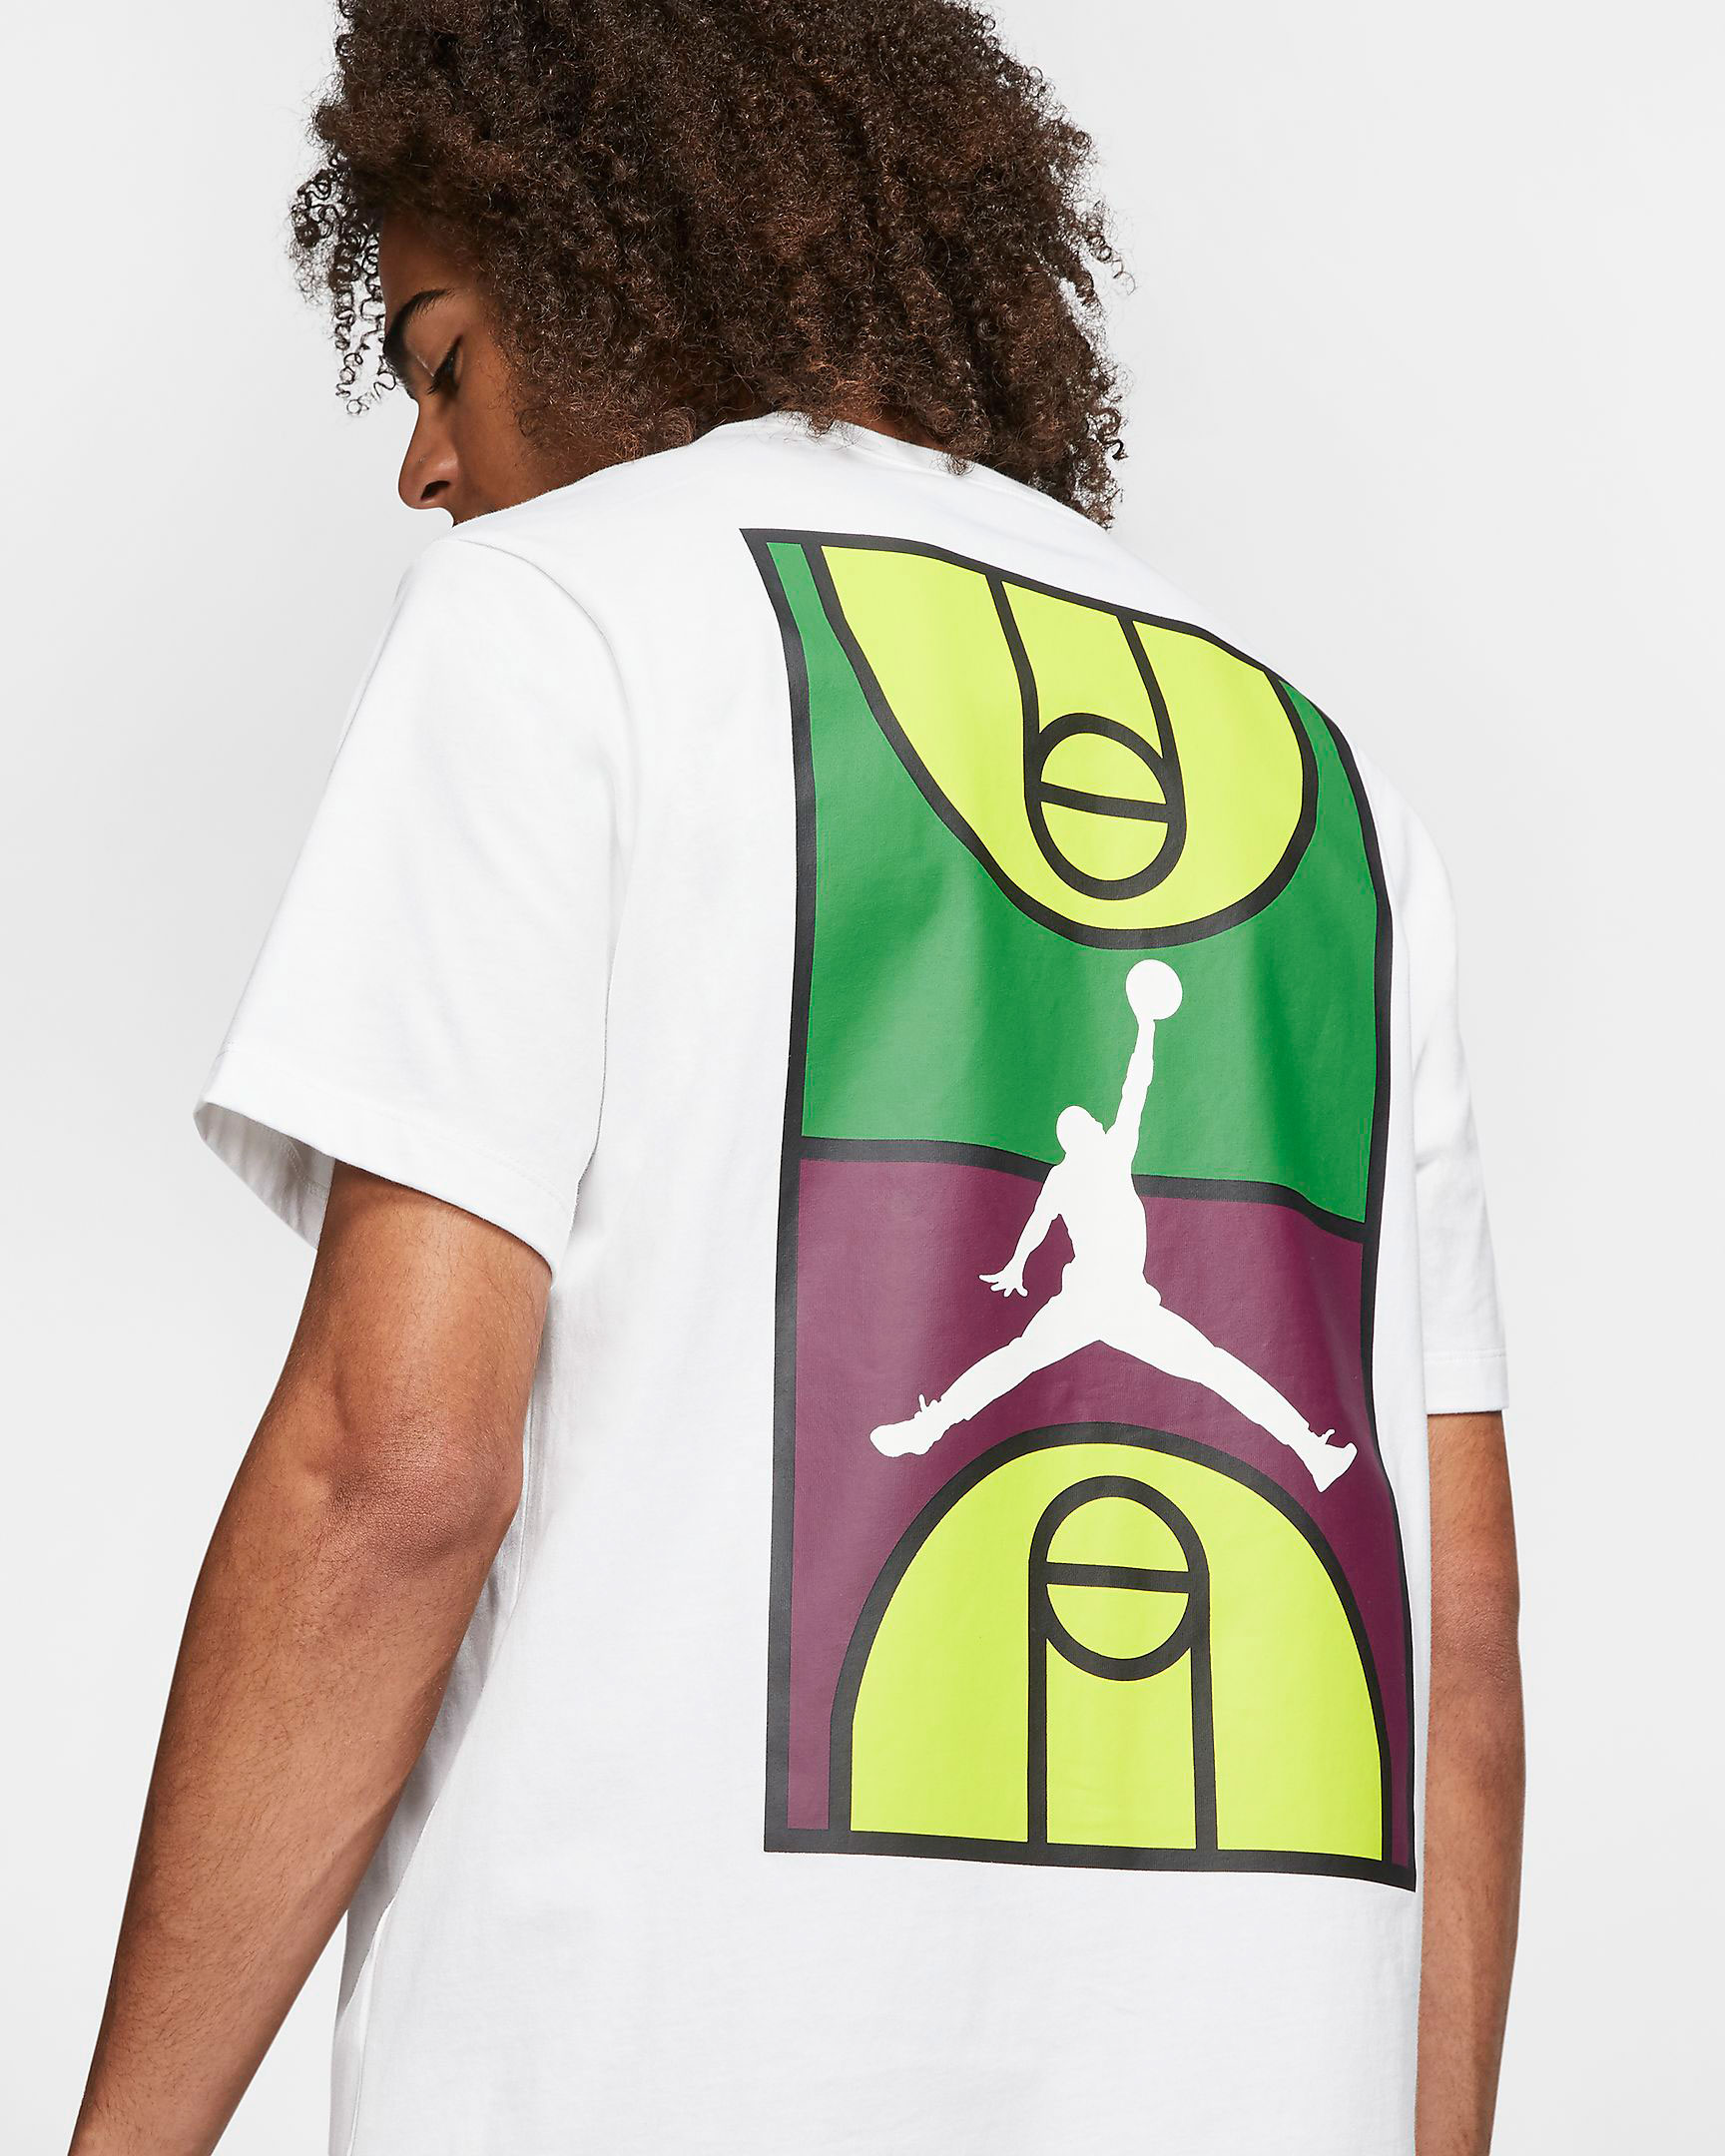 jordan-1-zoom-brut-zen-green-shirt-match-2